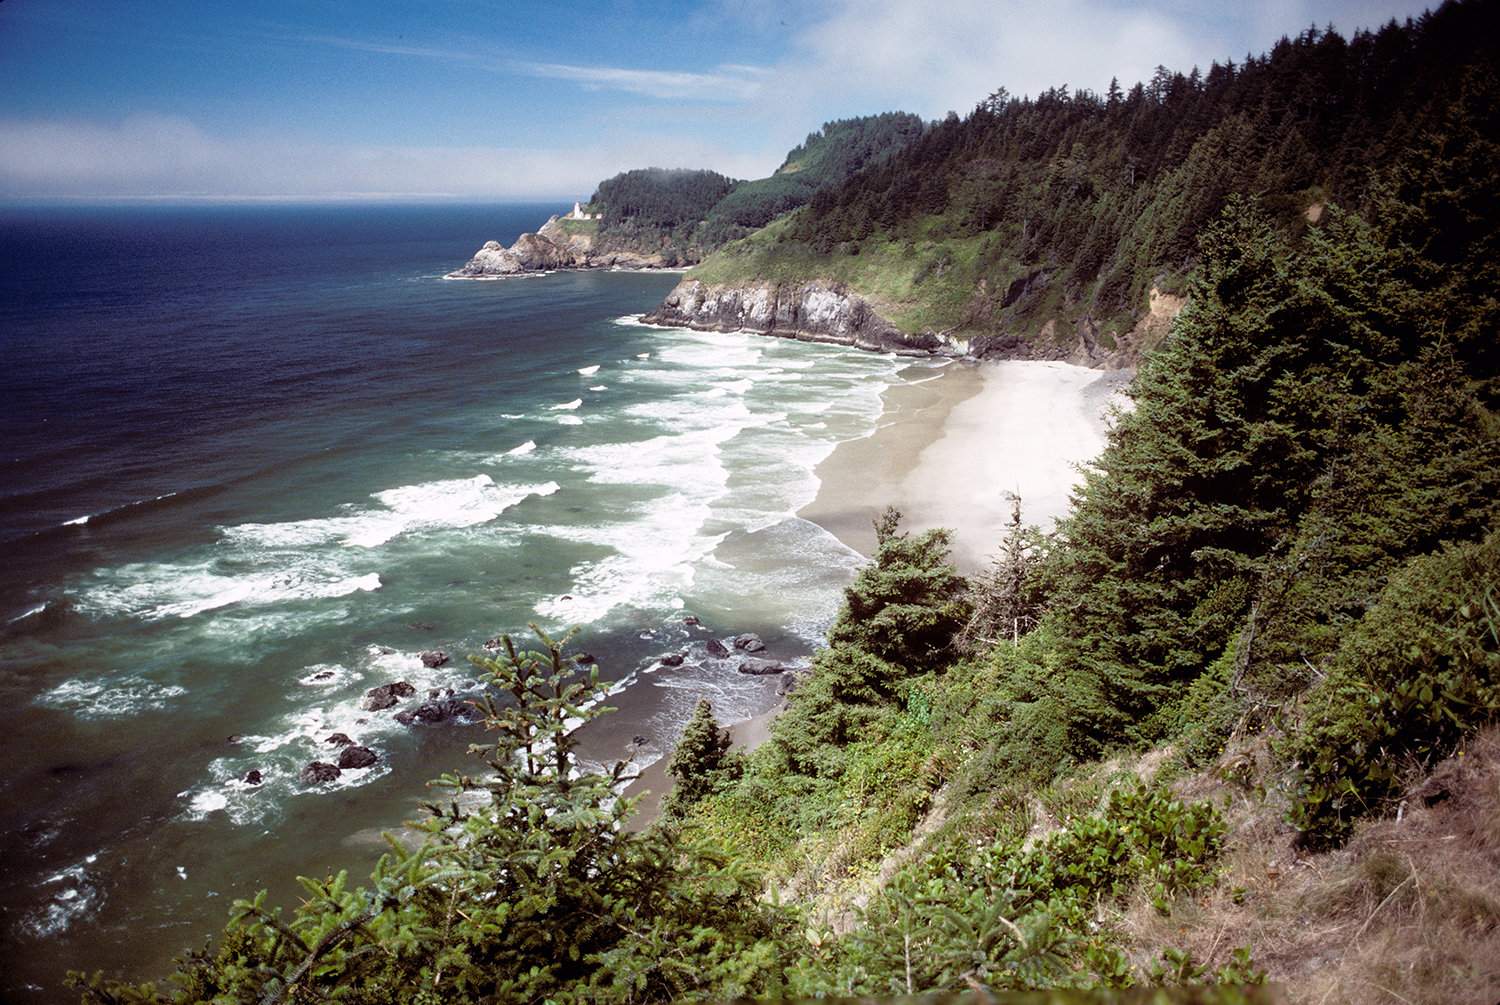 Oregon Coastline at Heceta Head